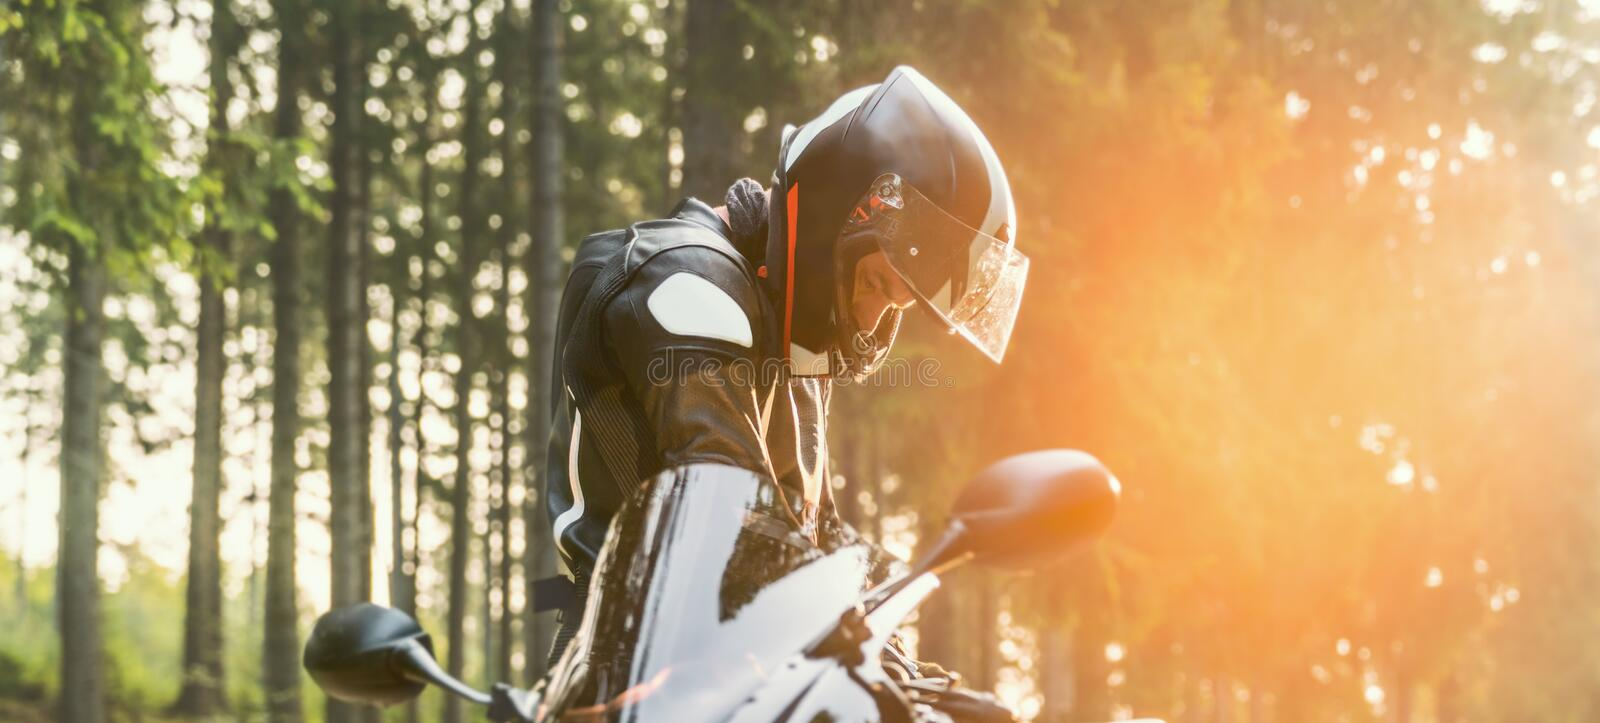 Motorbike on the road riding. having fun riding the empty road on a motorcycle tour / journey royalty free stock photography